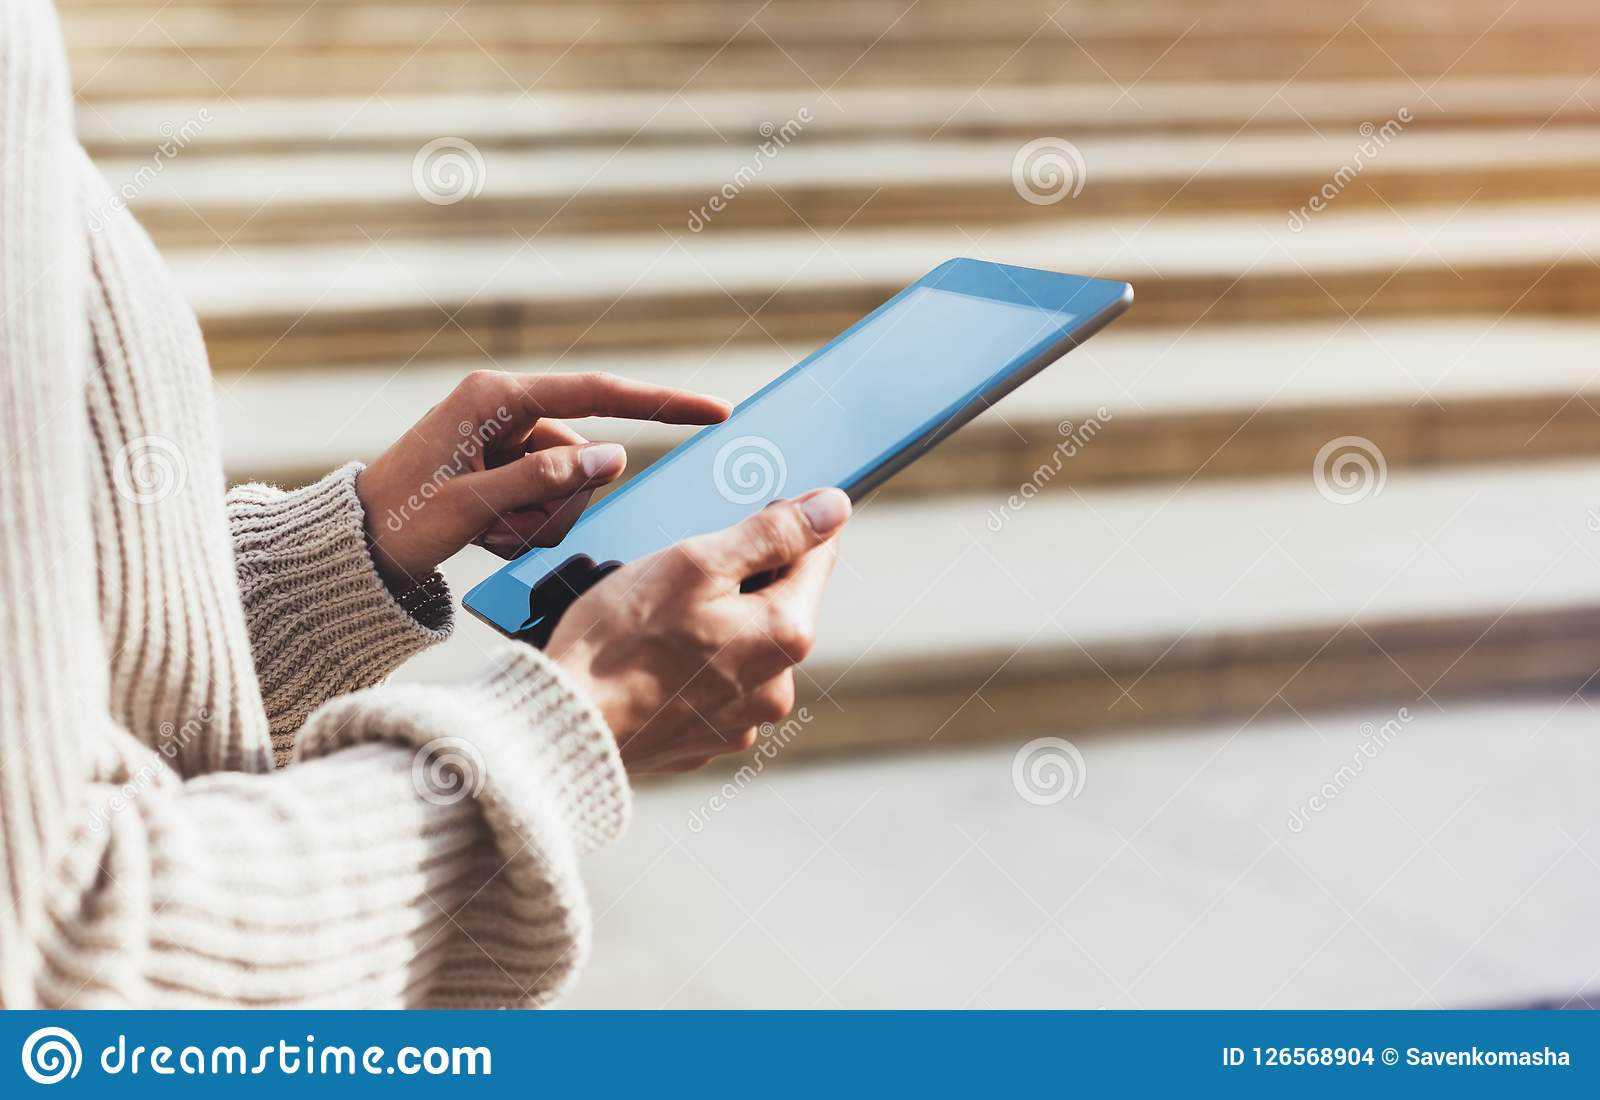 Hipster girl using tablet technology internet, blogger person holding computer on background sun city, female hands texting online